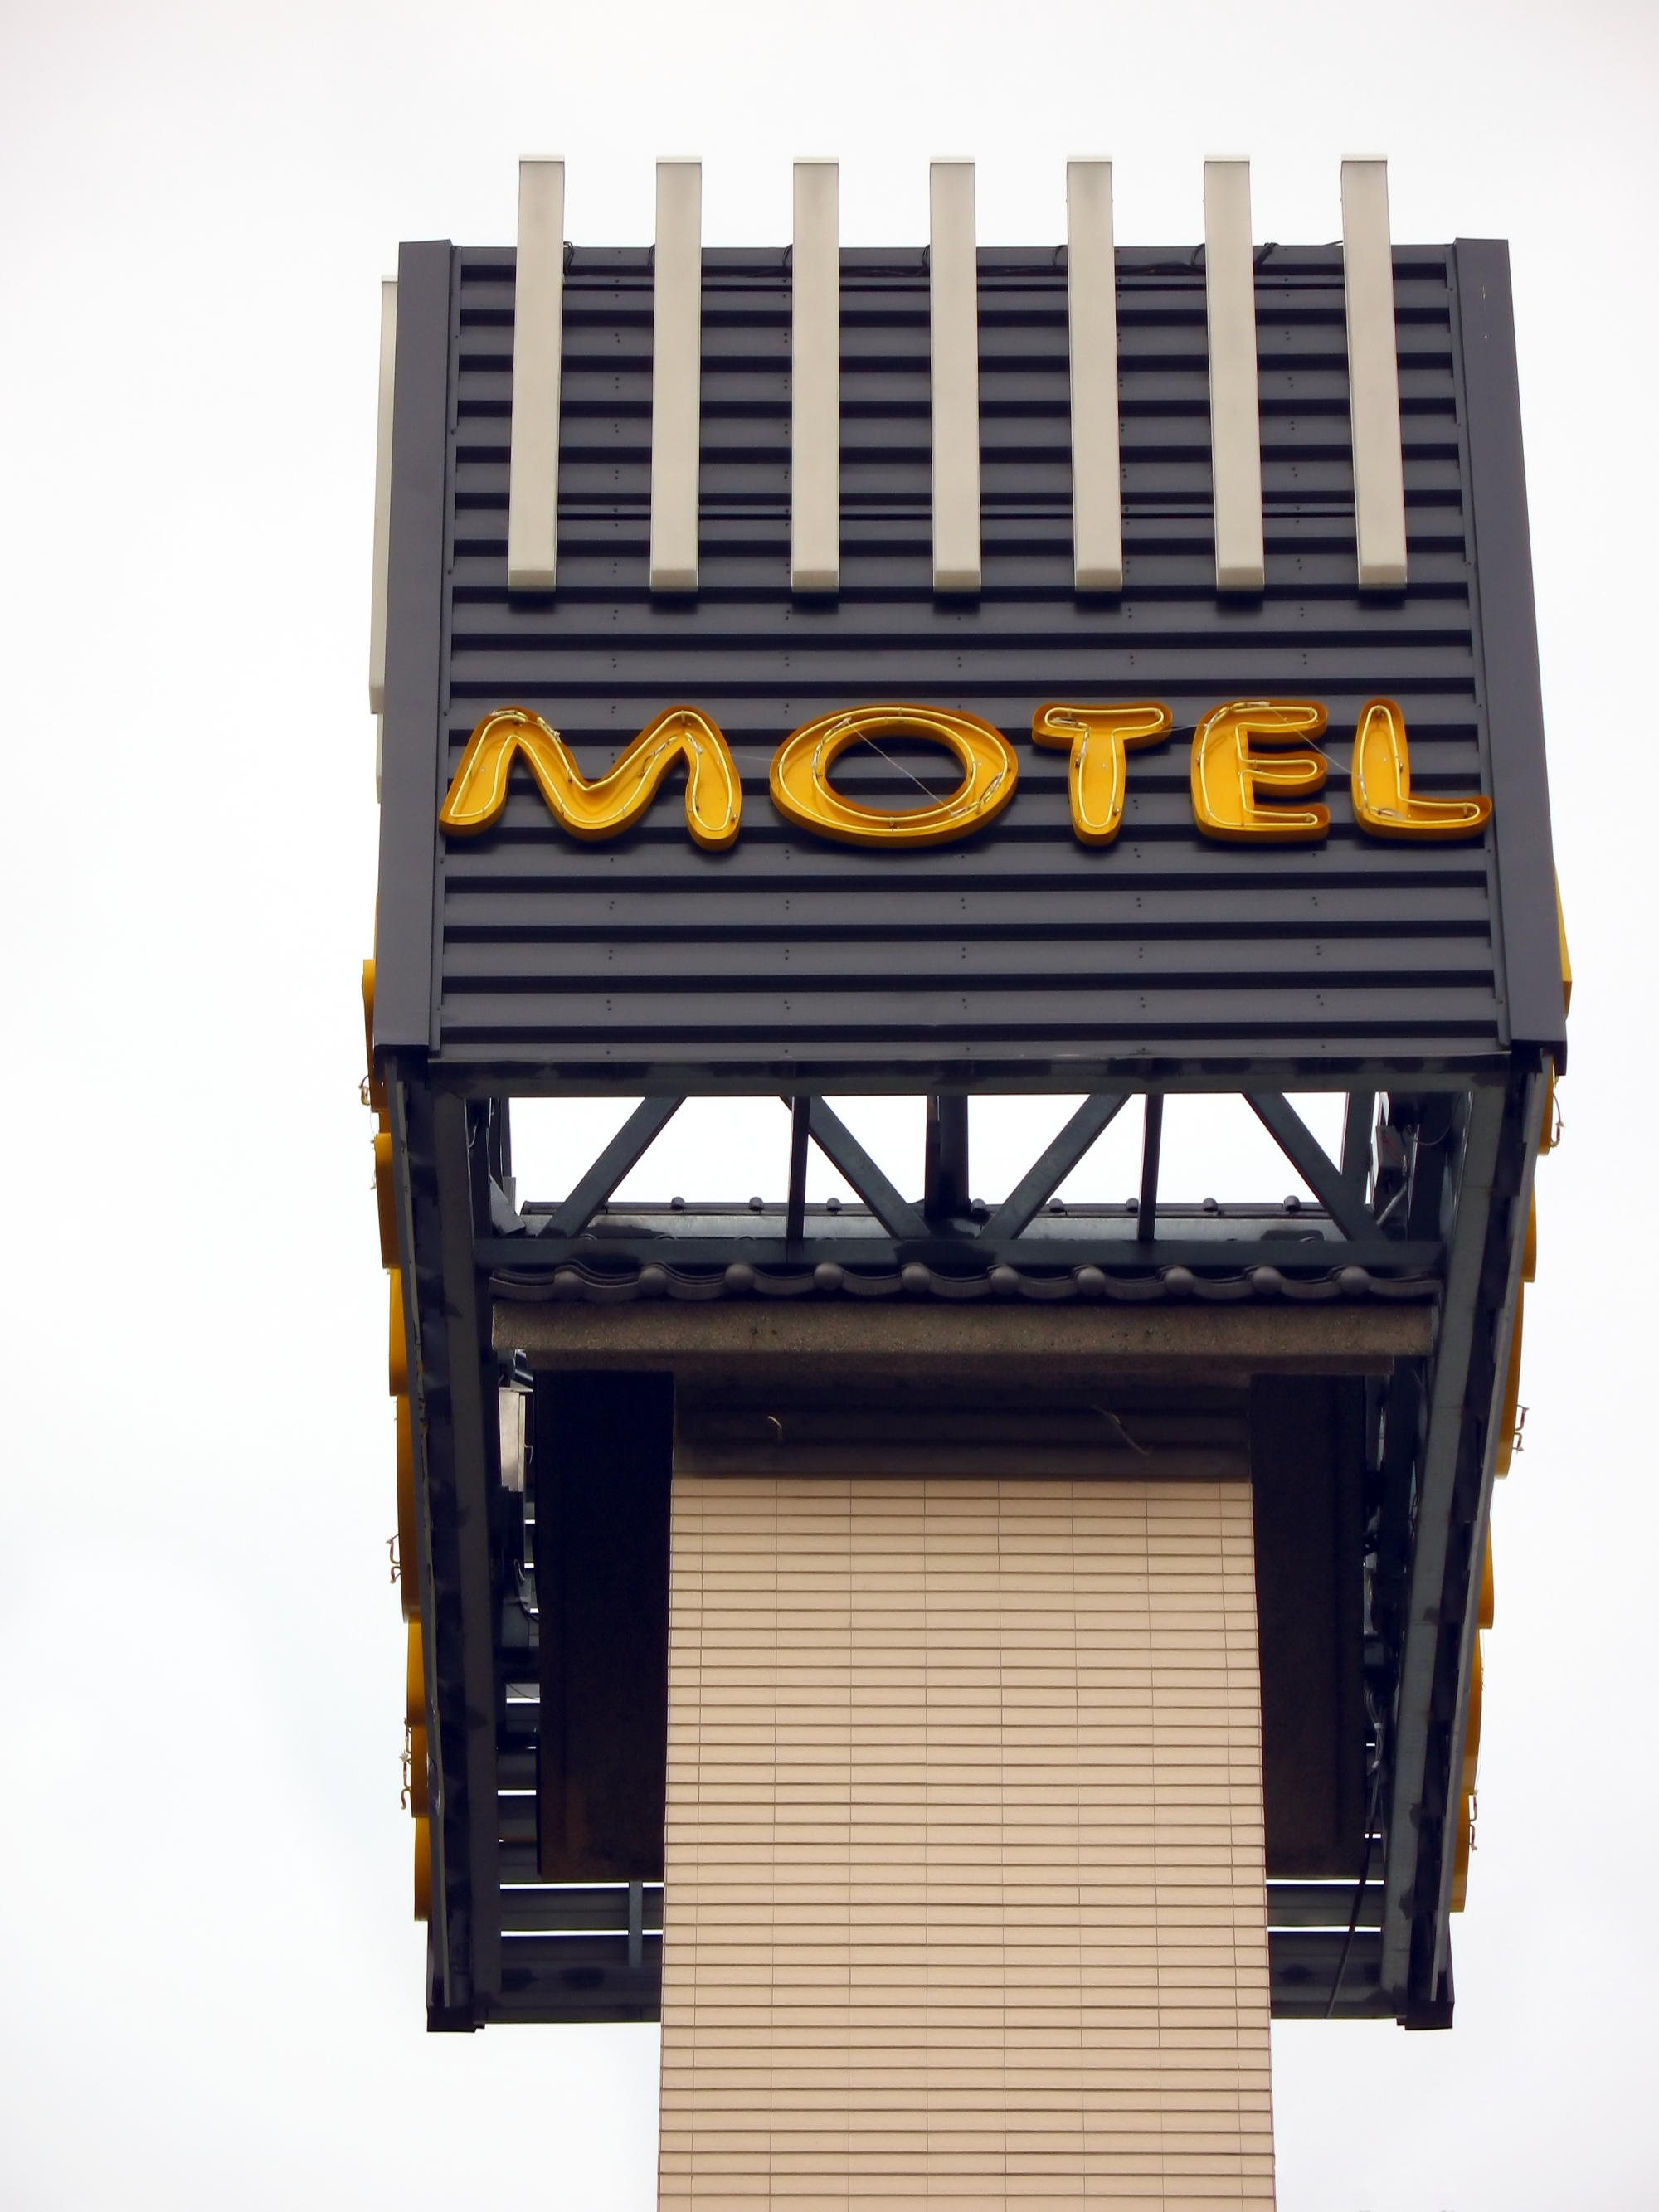 Motel Sign, Accommodation, Rent, Wires, Travel, HQ Photo